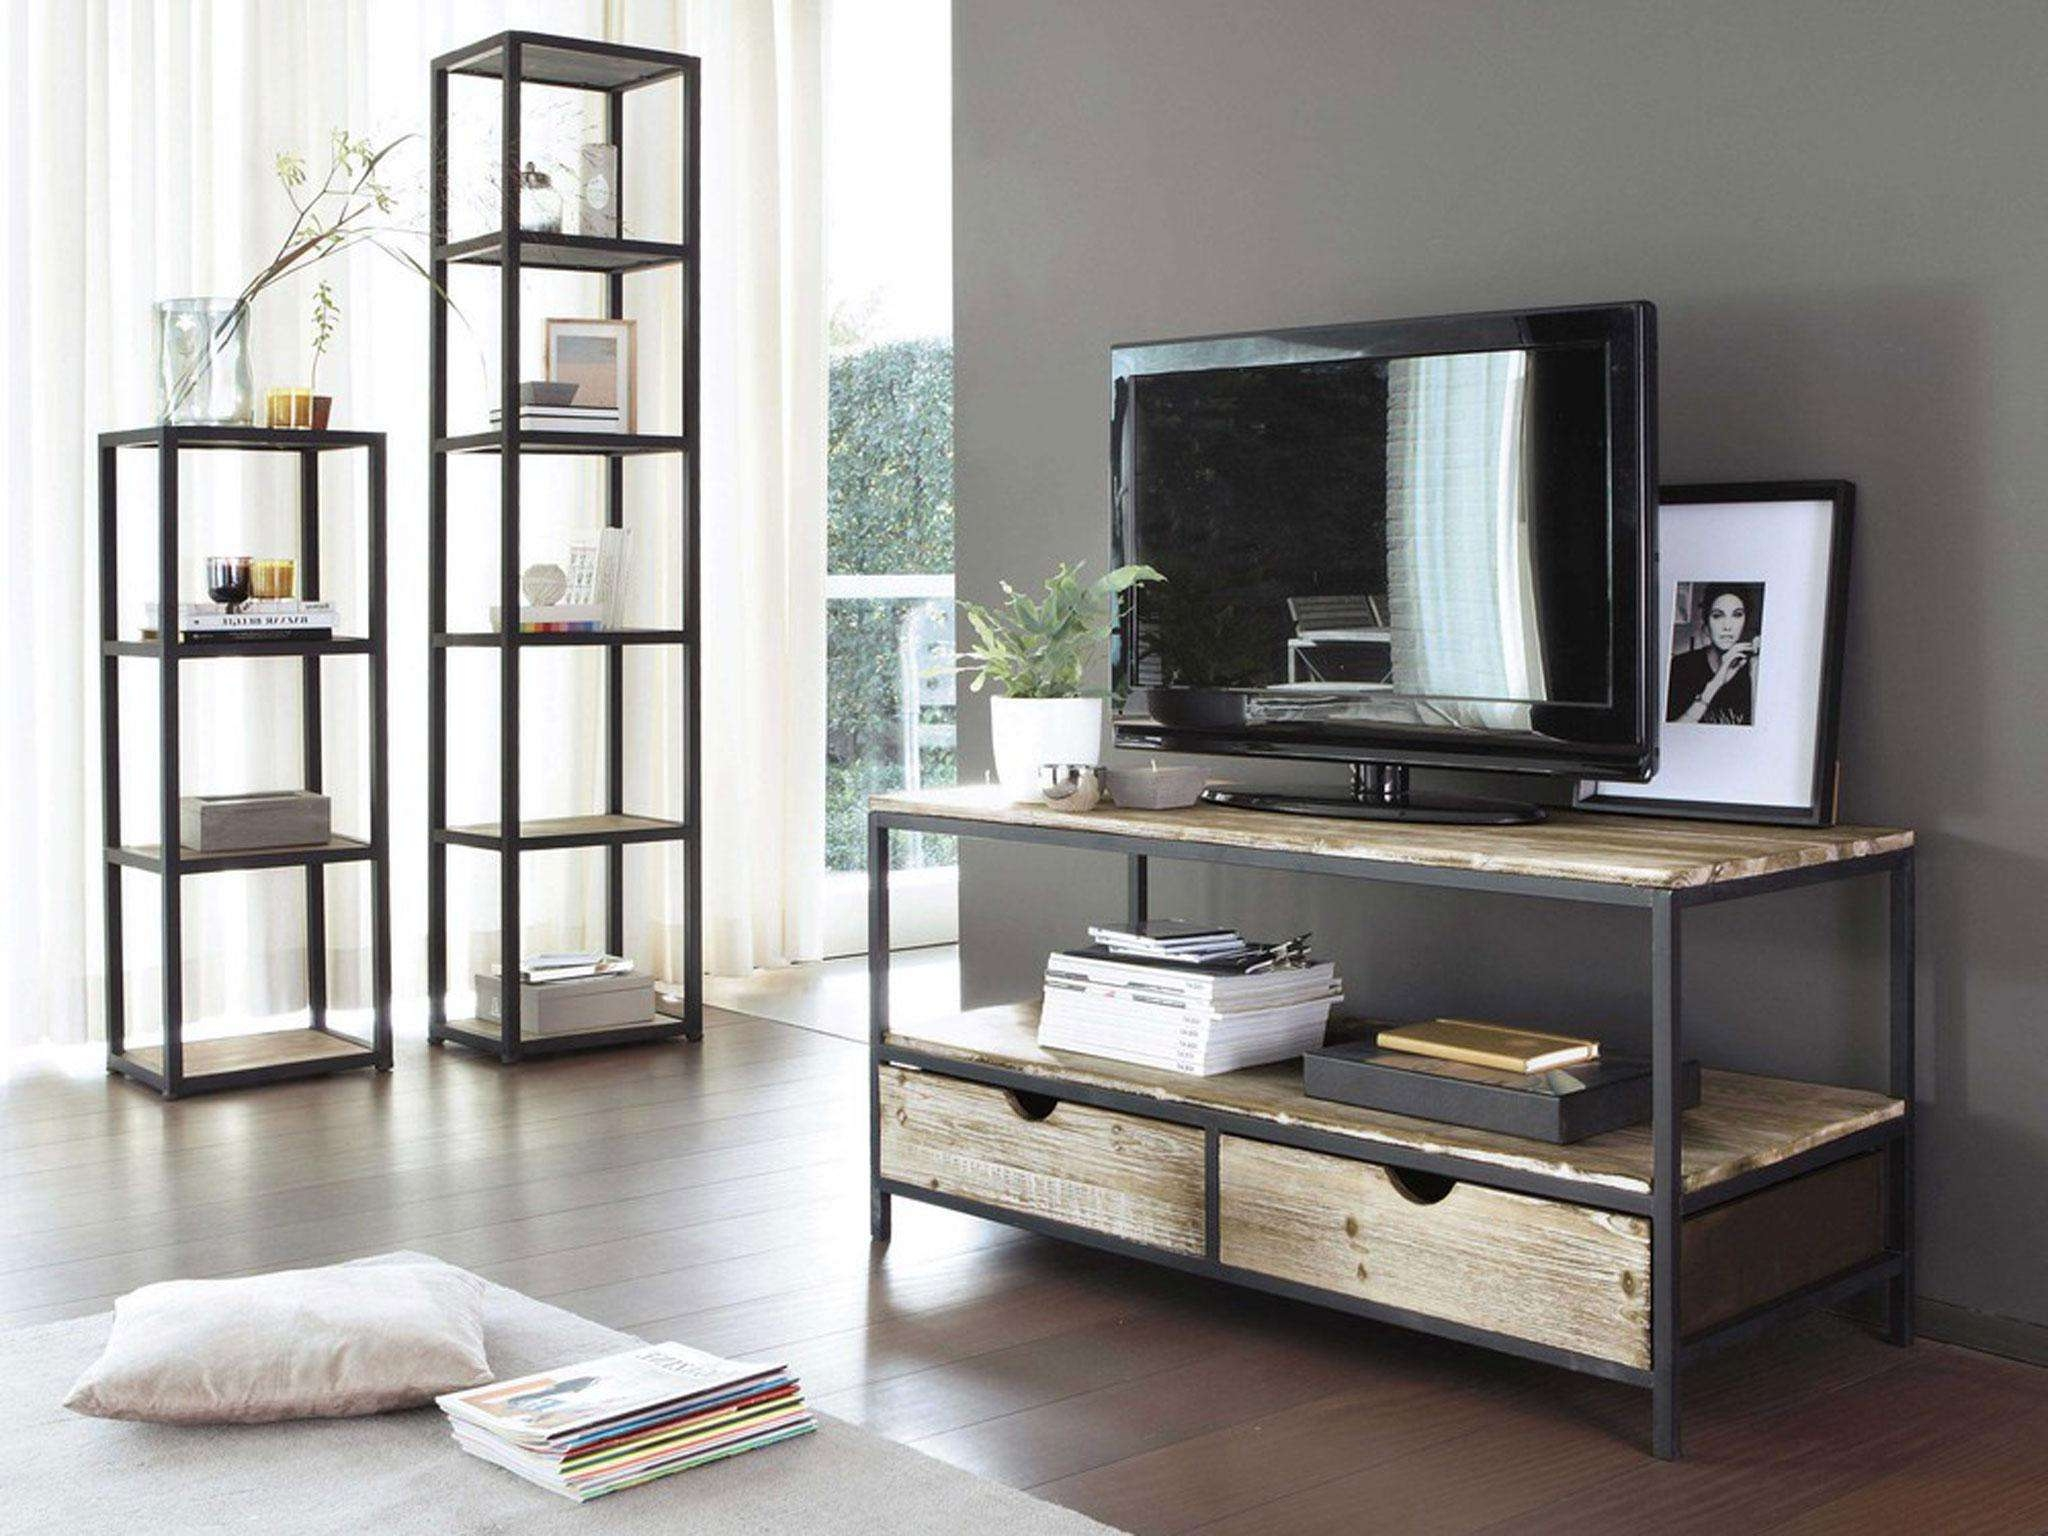 Coffee Table : Marvelous Tv Coffee Table Rustic Tv Stand Living Within Tv Cabinets And Coffee Table Sets (View 7 of 20)